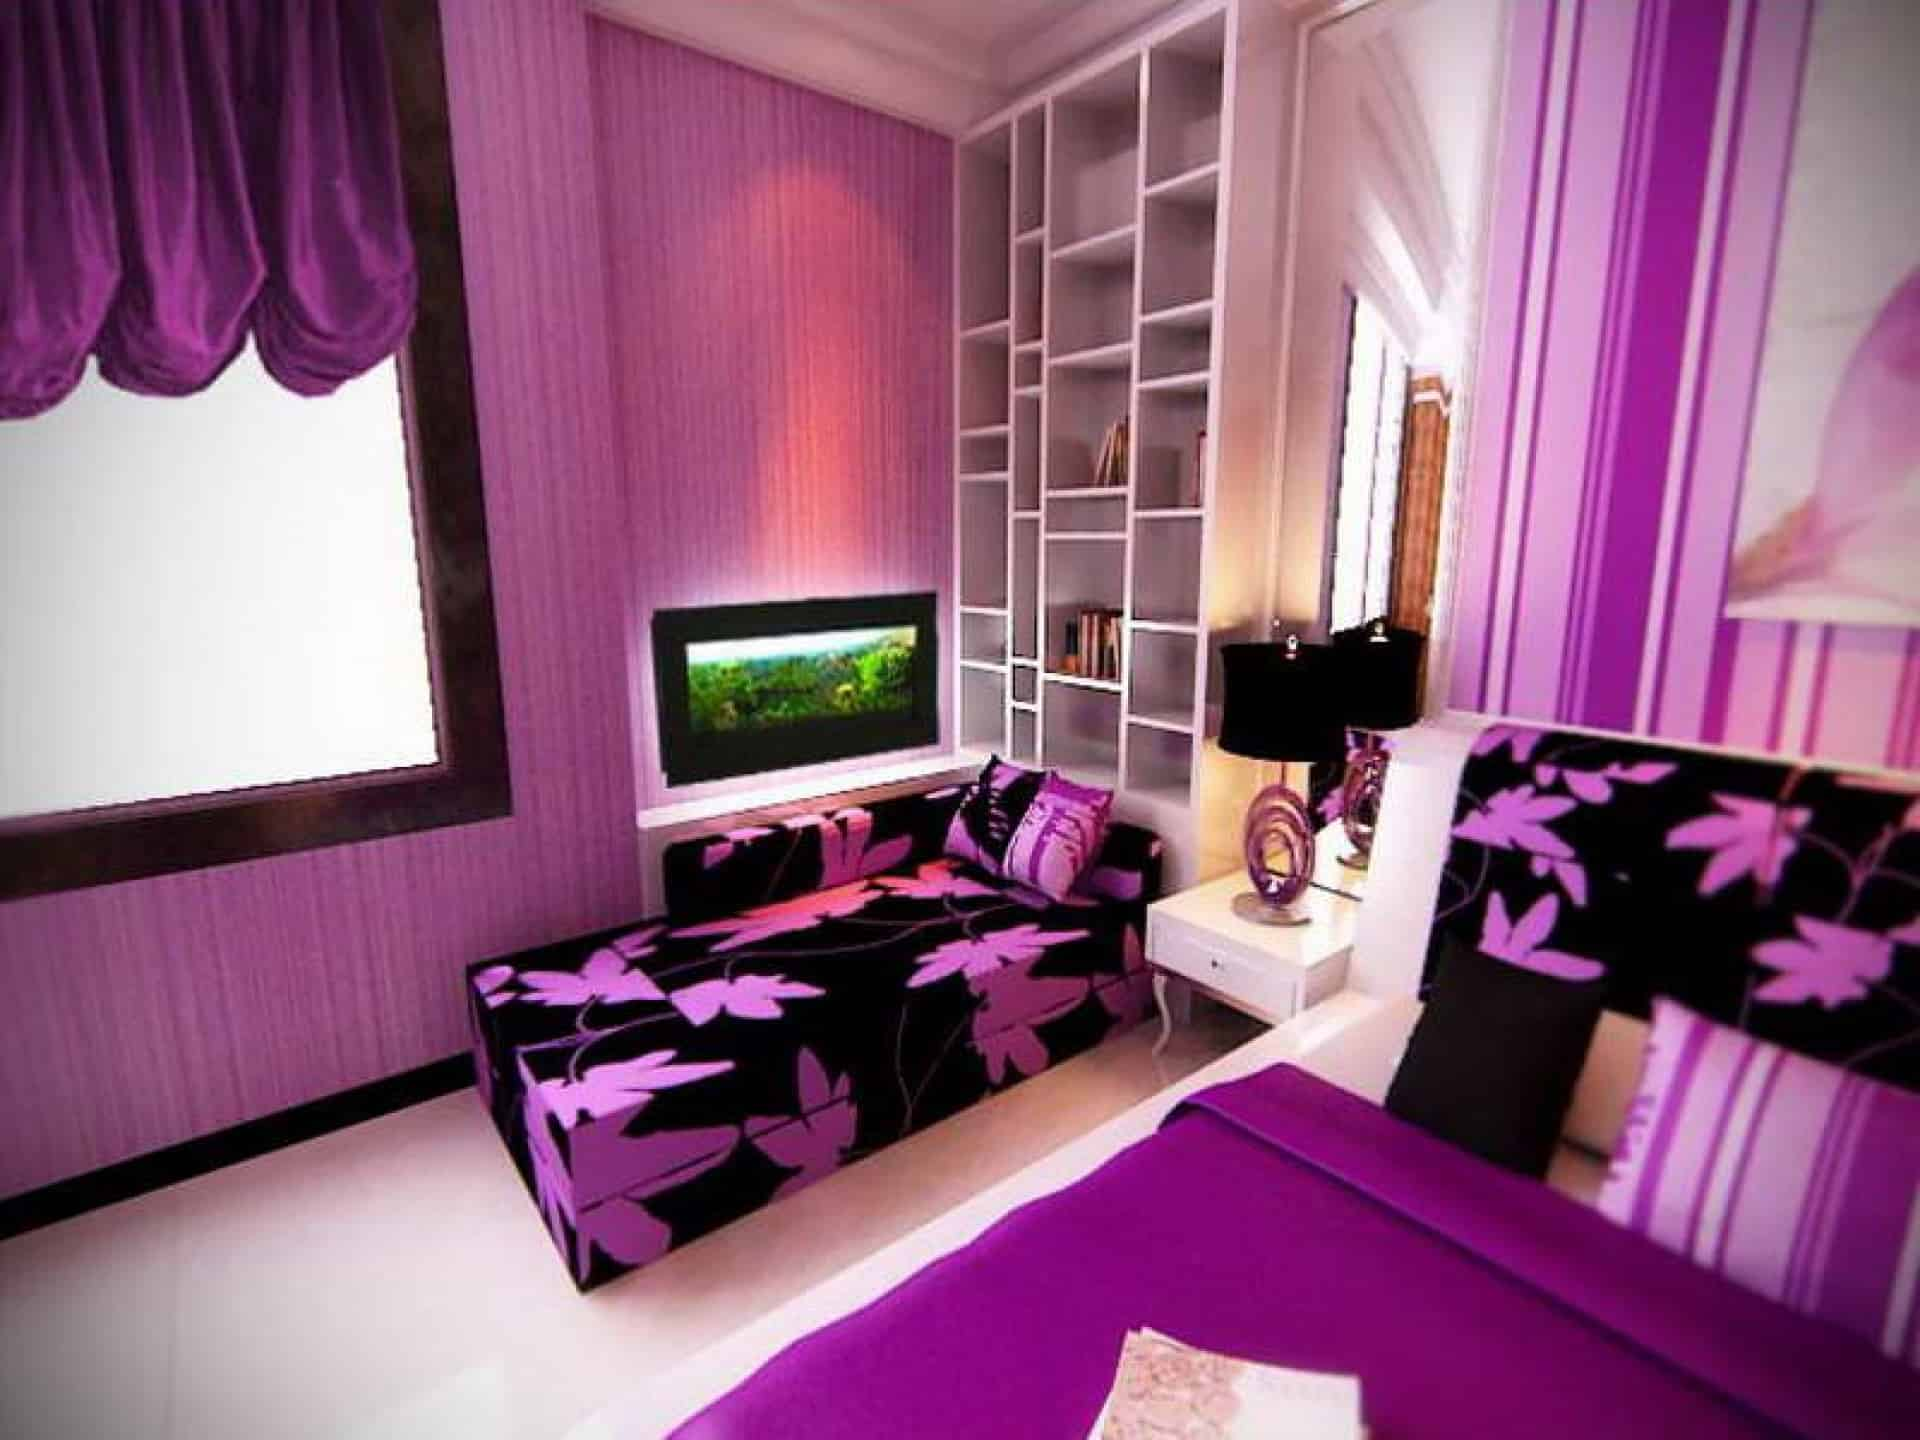 Bedroom ideas for girls purple - Purple Teen Room Girls Room Bedroom Ideas Teen